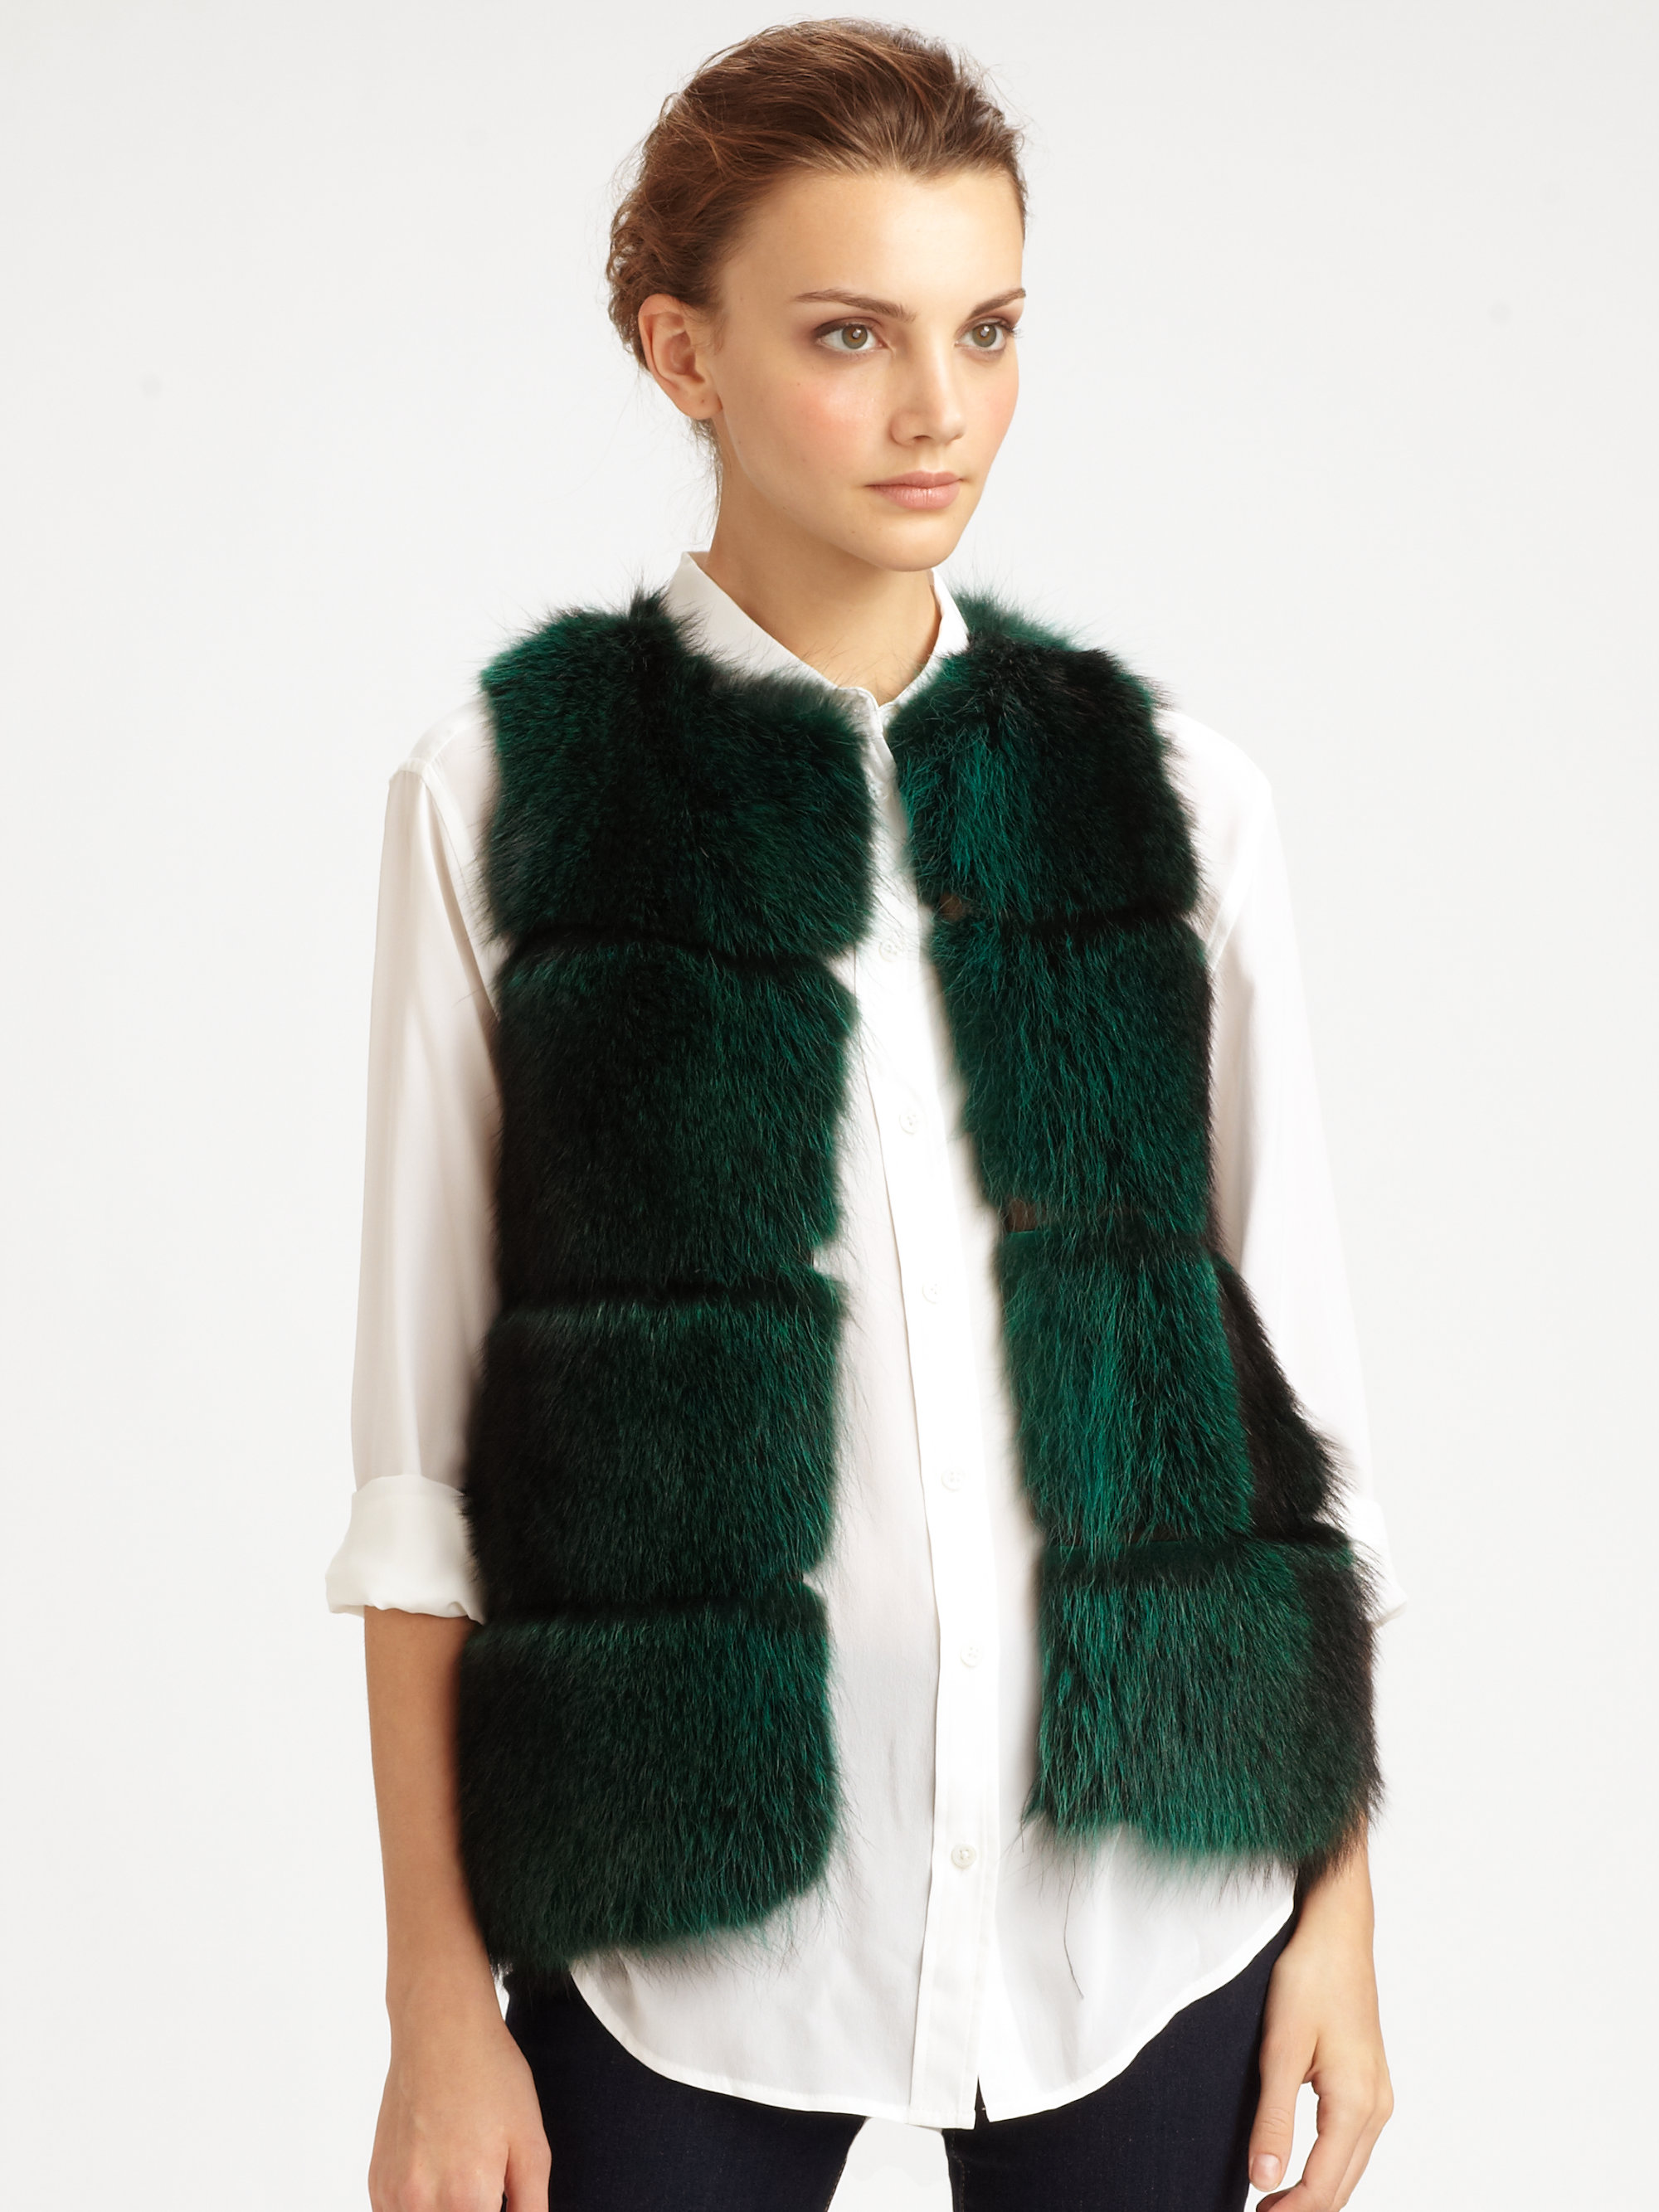 Green Fur Vest - Faux fur vest with hook and eye closure down the front. Deep emerald green. NWT. #NWT #jessicasimpson #faux #fauxfur #fur #green #furvest #fauxfurvest #greenvest #greenfur #plussize #macys #plussizefashion.